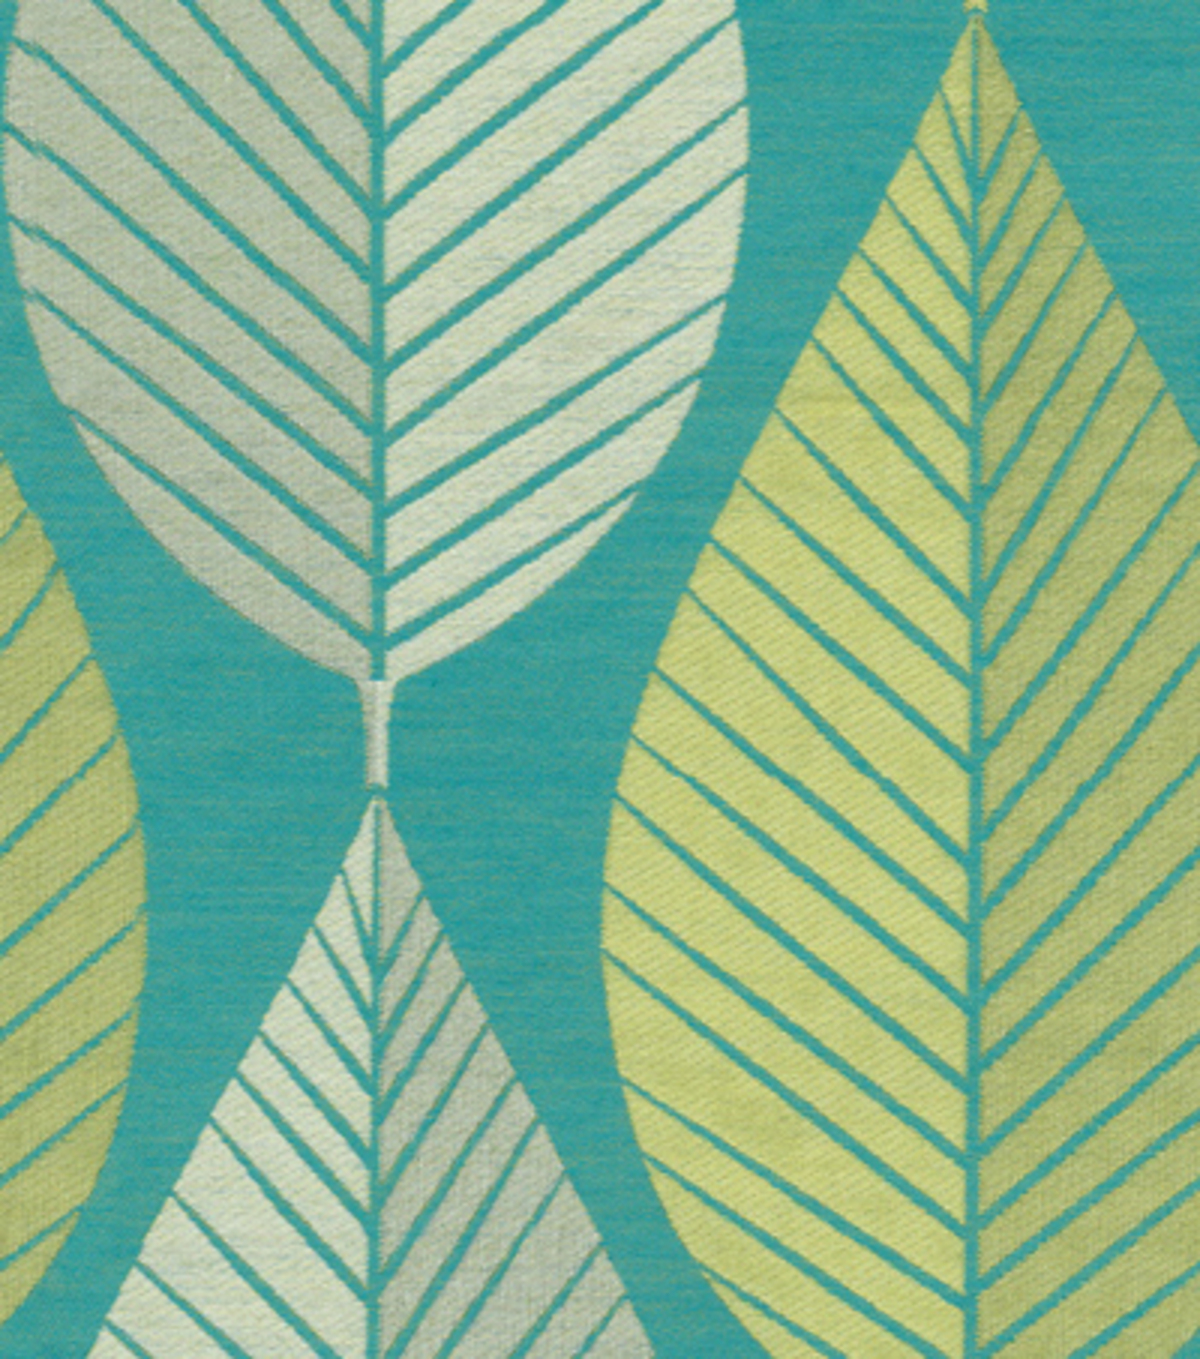 Home Decor 8\u0022x8\u0022 Fabric Swatch-HGTV HOME Looseleaf Turquoise